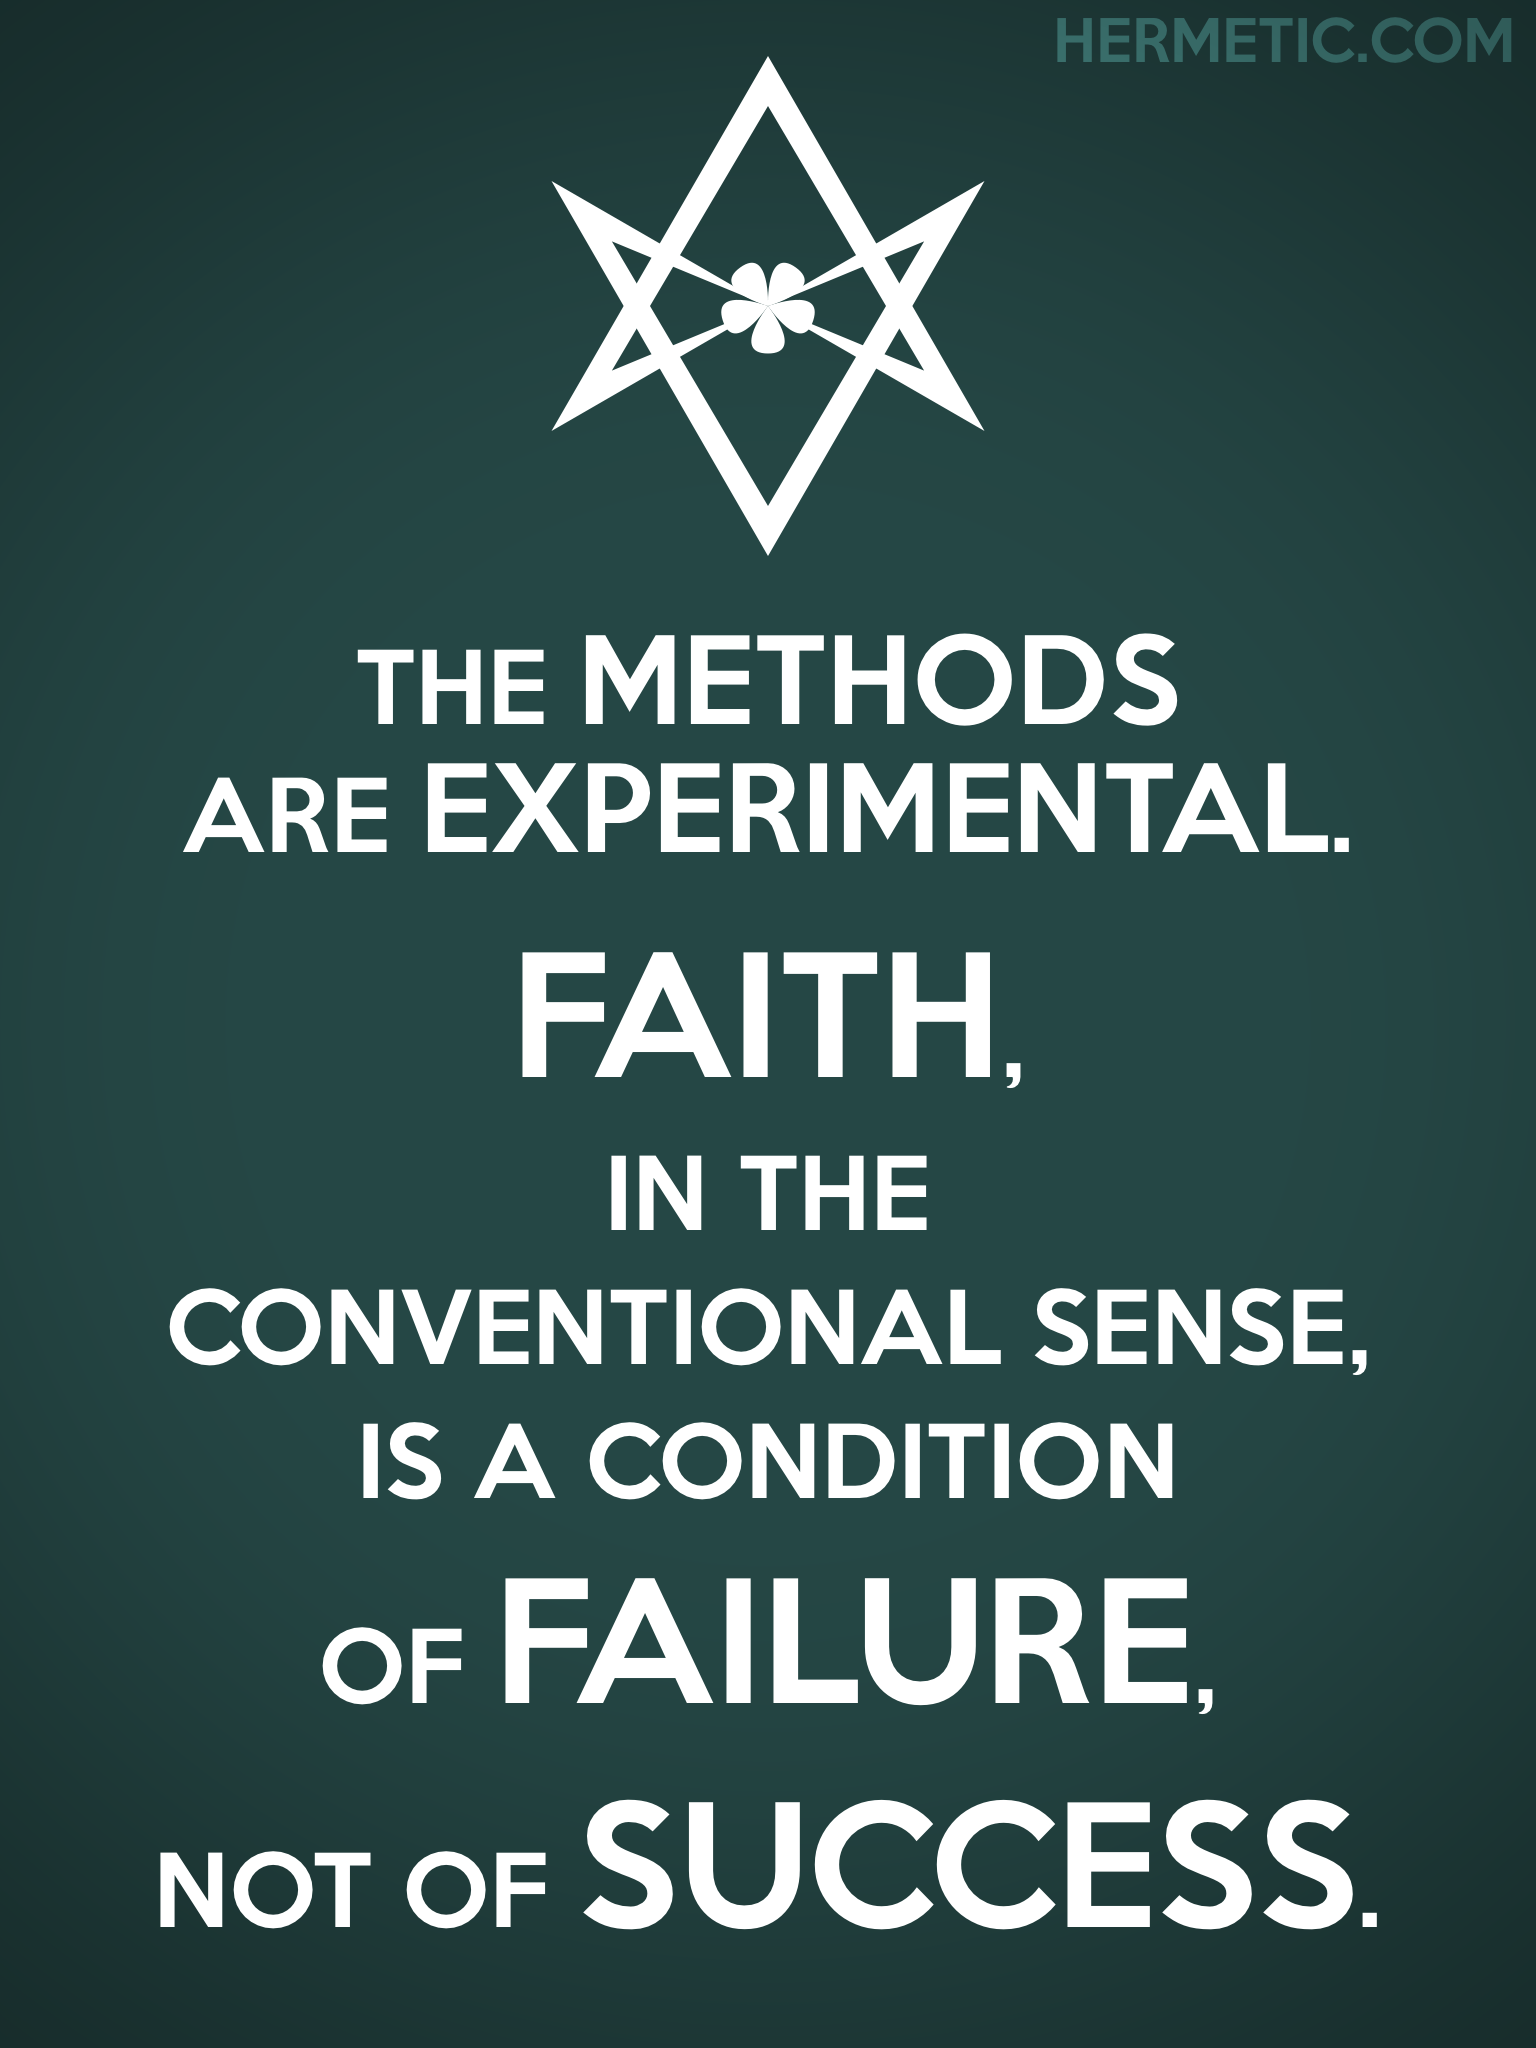 Unicursal FAITH IS FAILURE NOT SUCCESS Propaganda Poster from Hermetic Library Office of the Ministry of Information